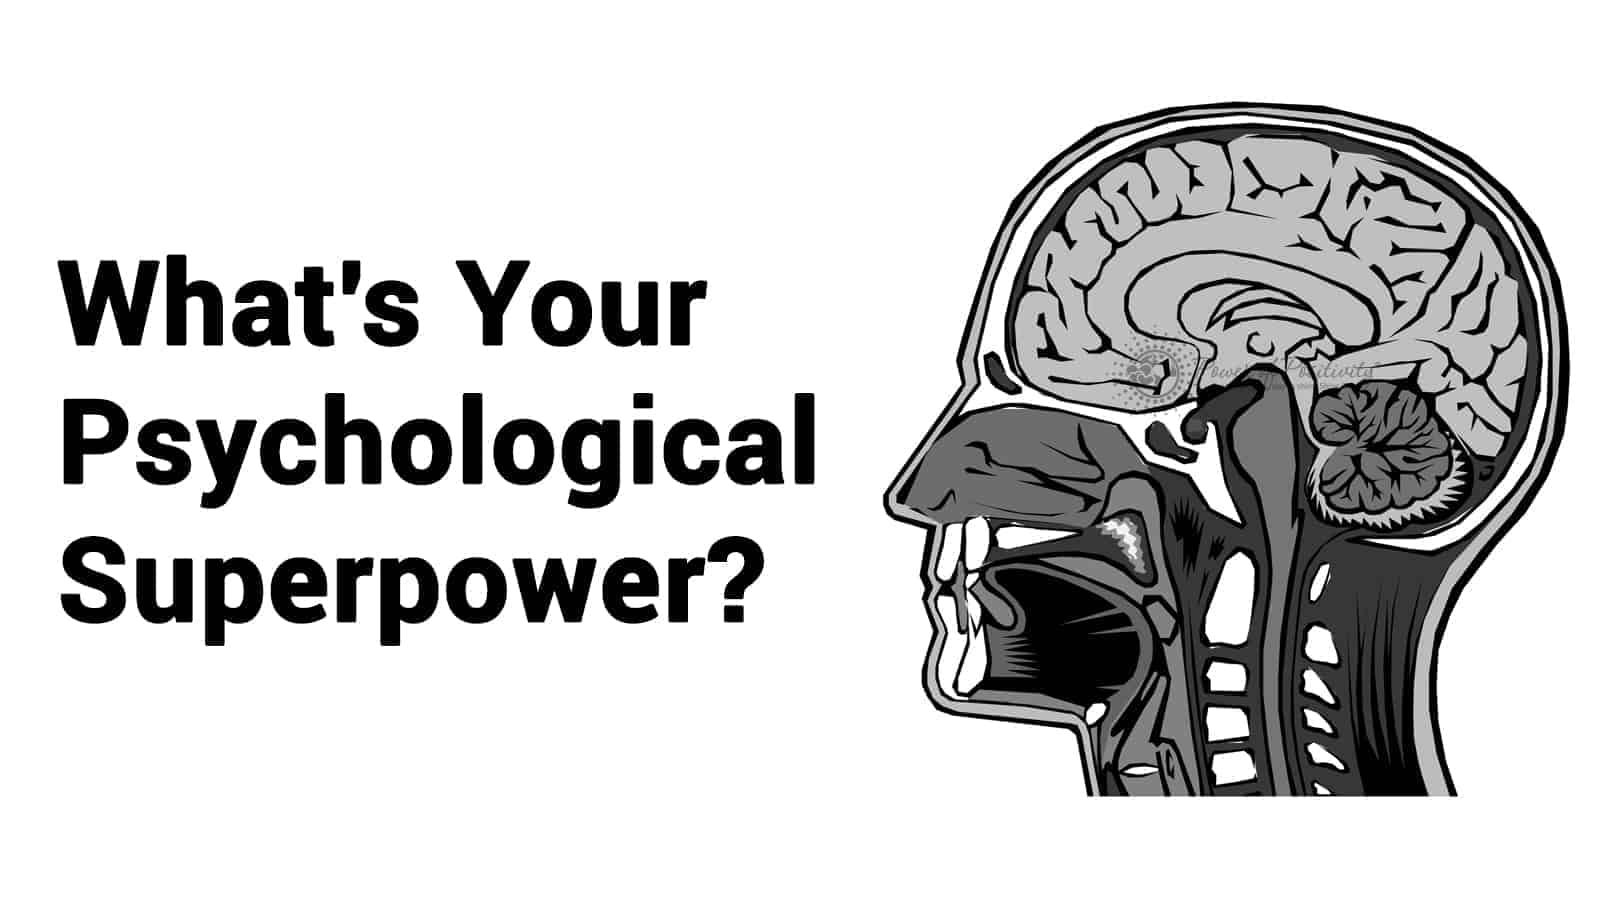 What Is Your Psychological Superpower